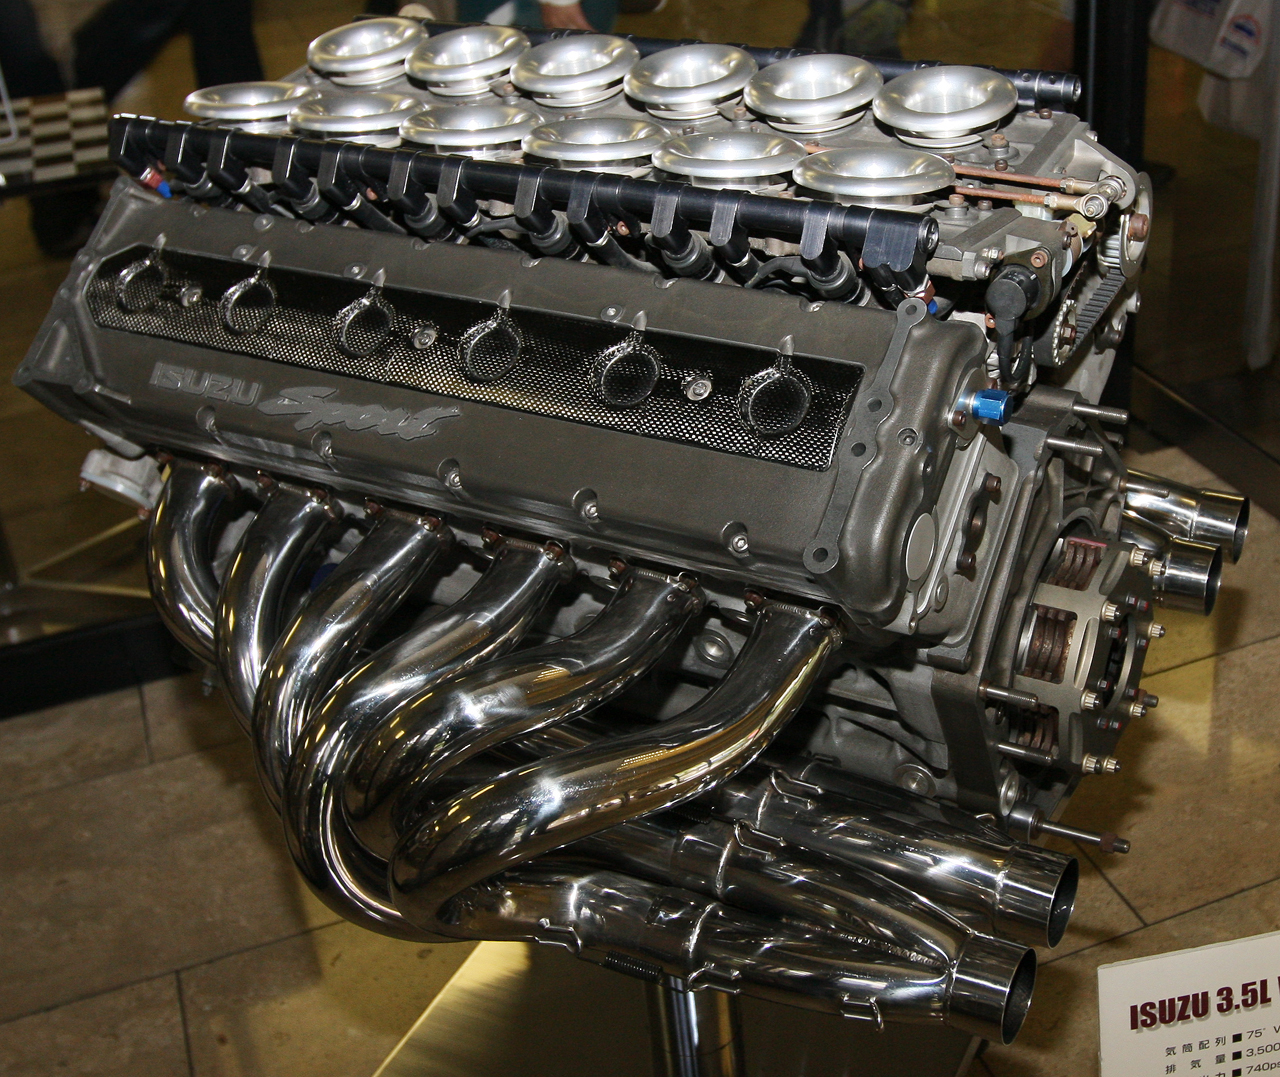 The Isuzu V12 appeared to be Lotus' ticket back to the top.